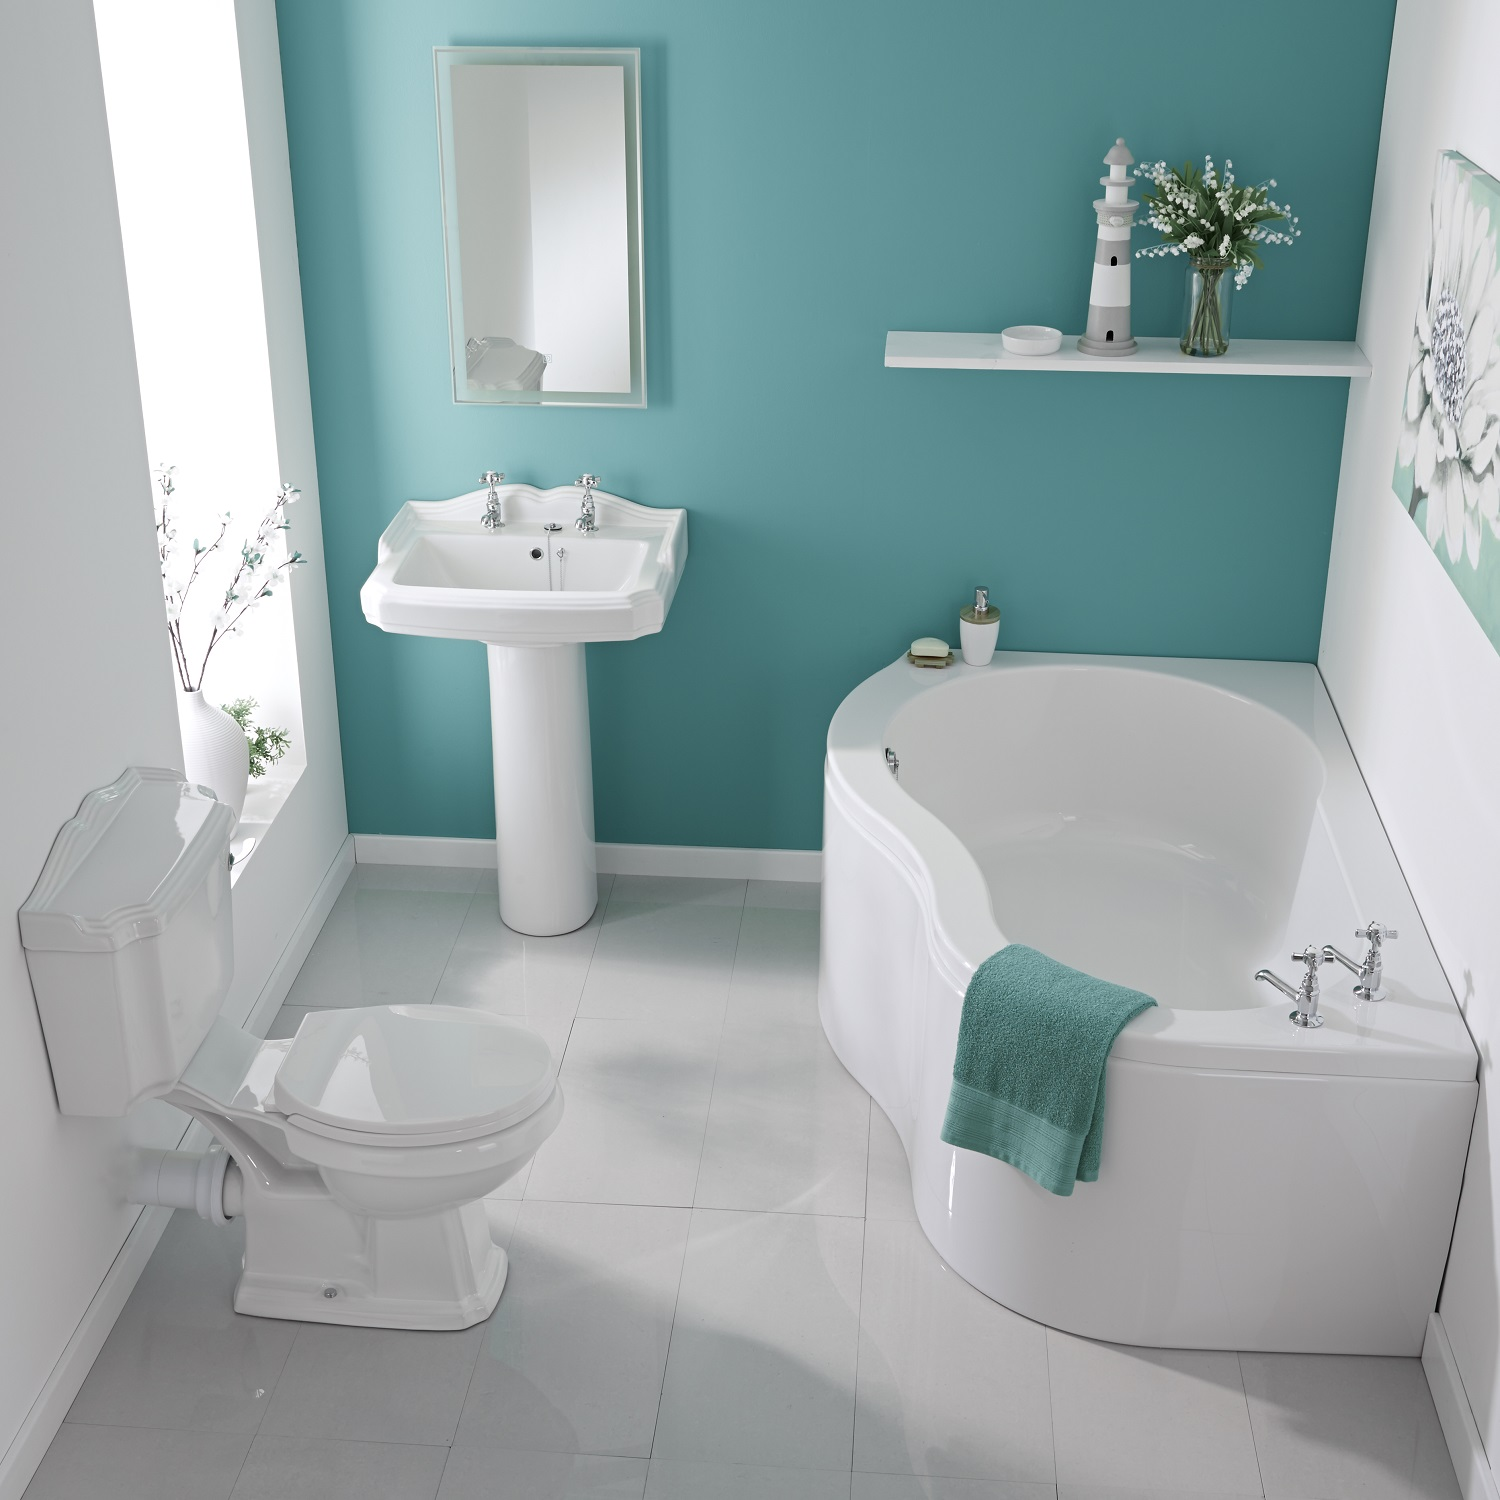 Bathroom Suites The Bathroom Suites Buyers Guide Big Bathroom Shop